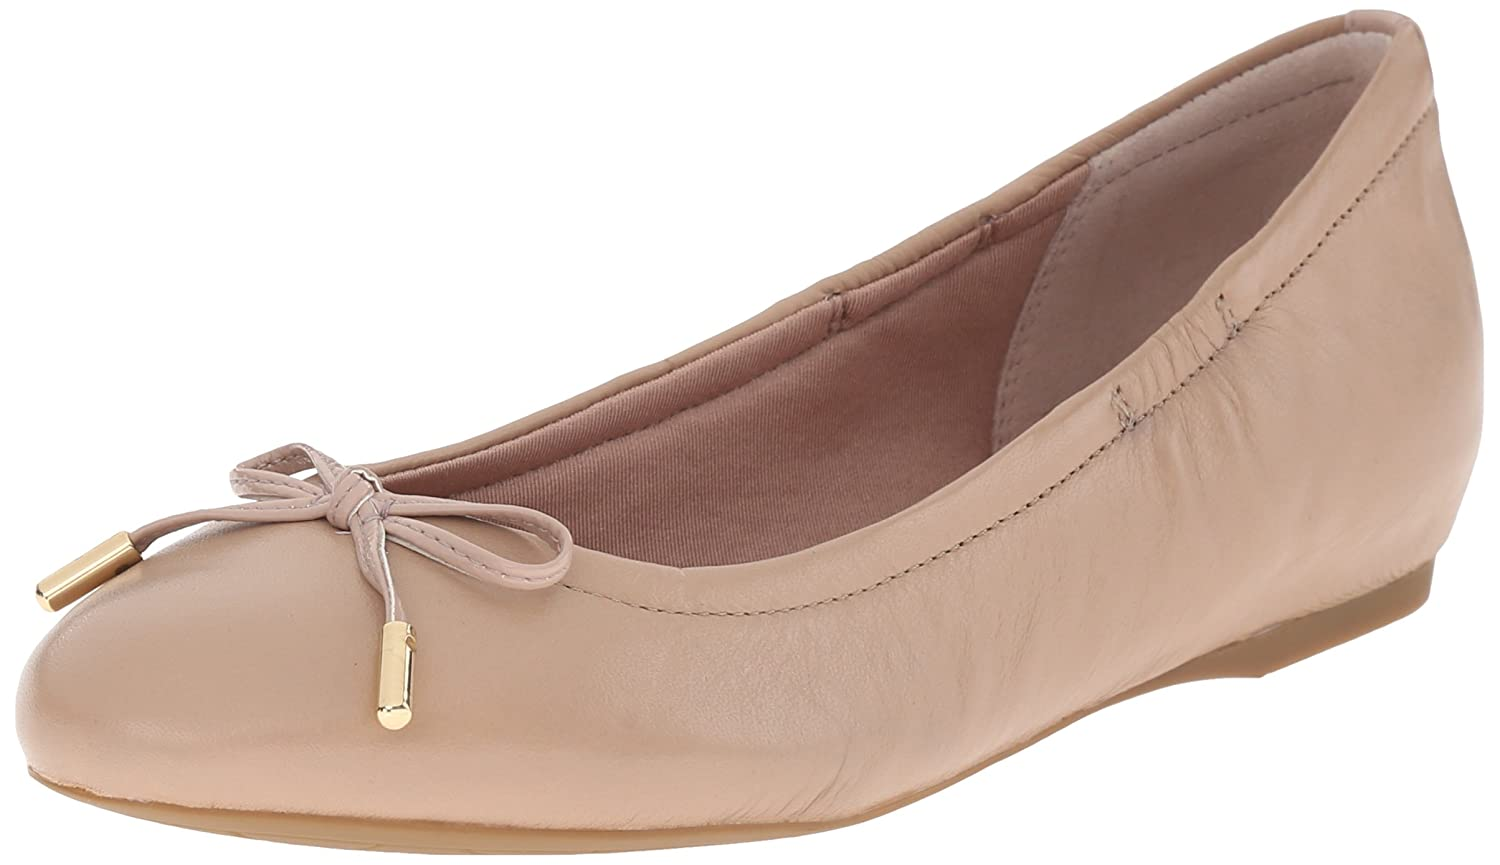 Rockport Women's Total Motion 20mm Bow Ballet B013QWNQ4U 6.5 B(M) US|Warm Taupe Nappa